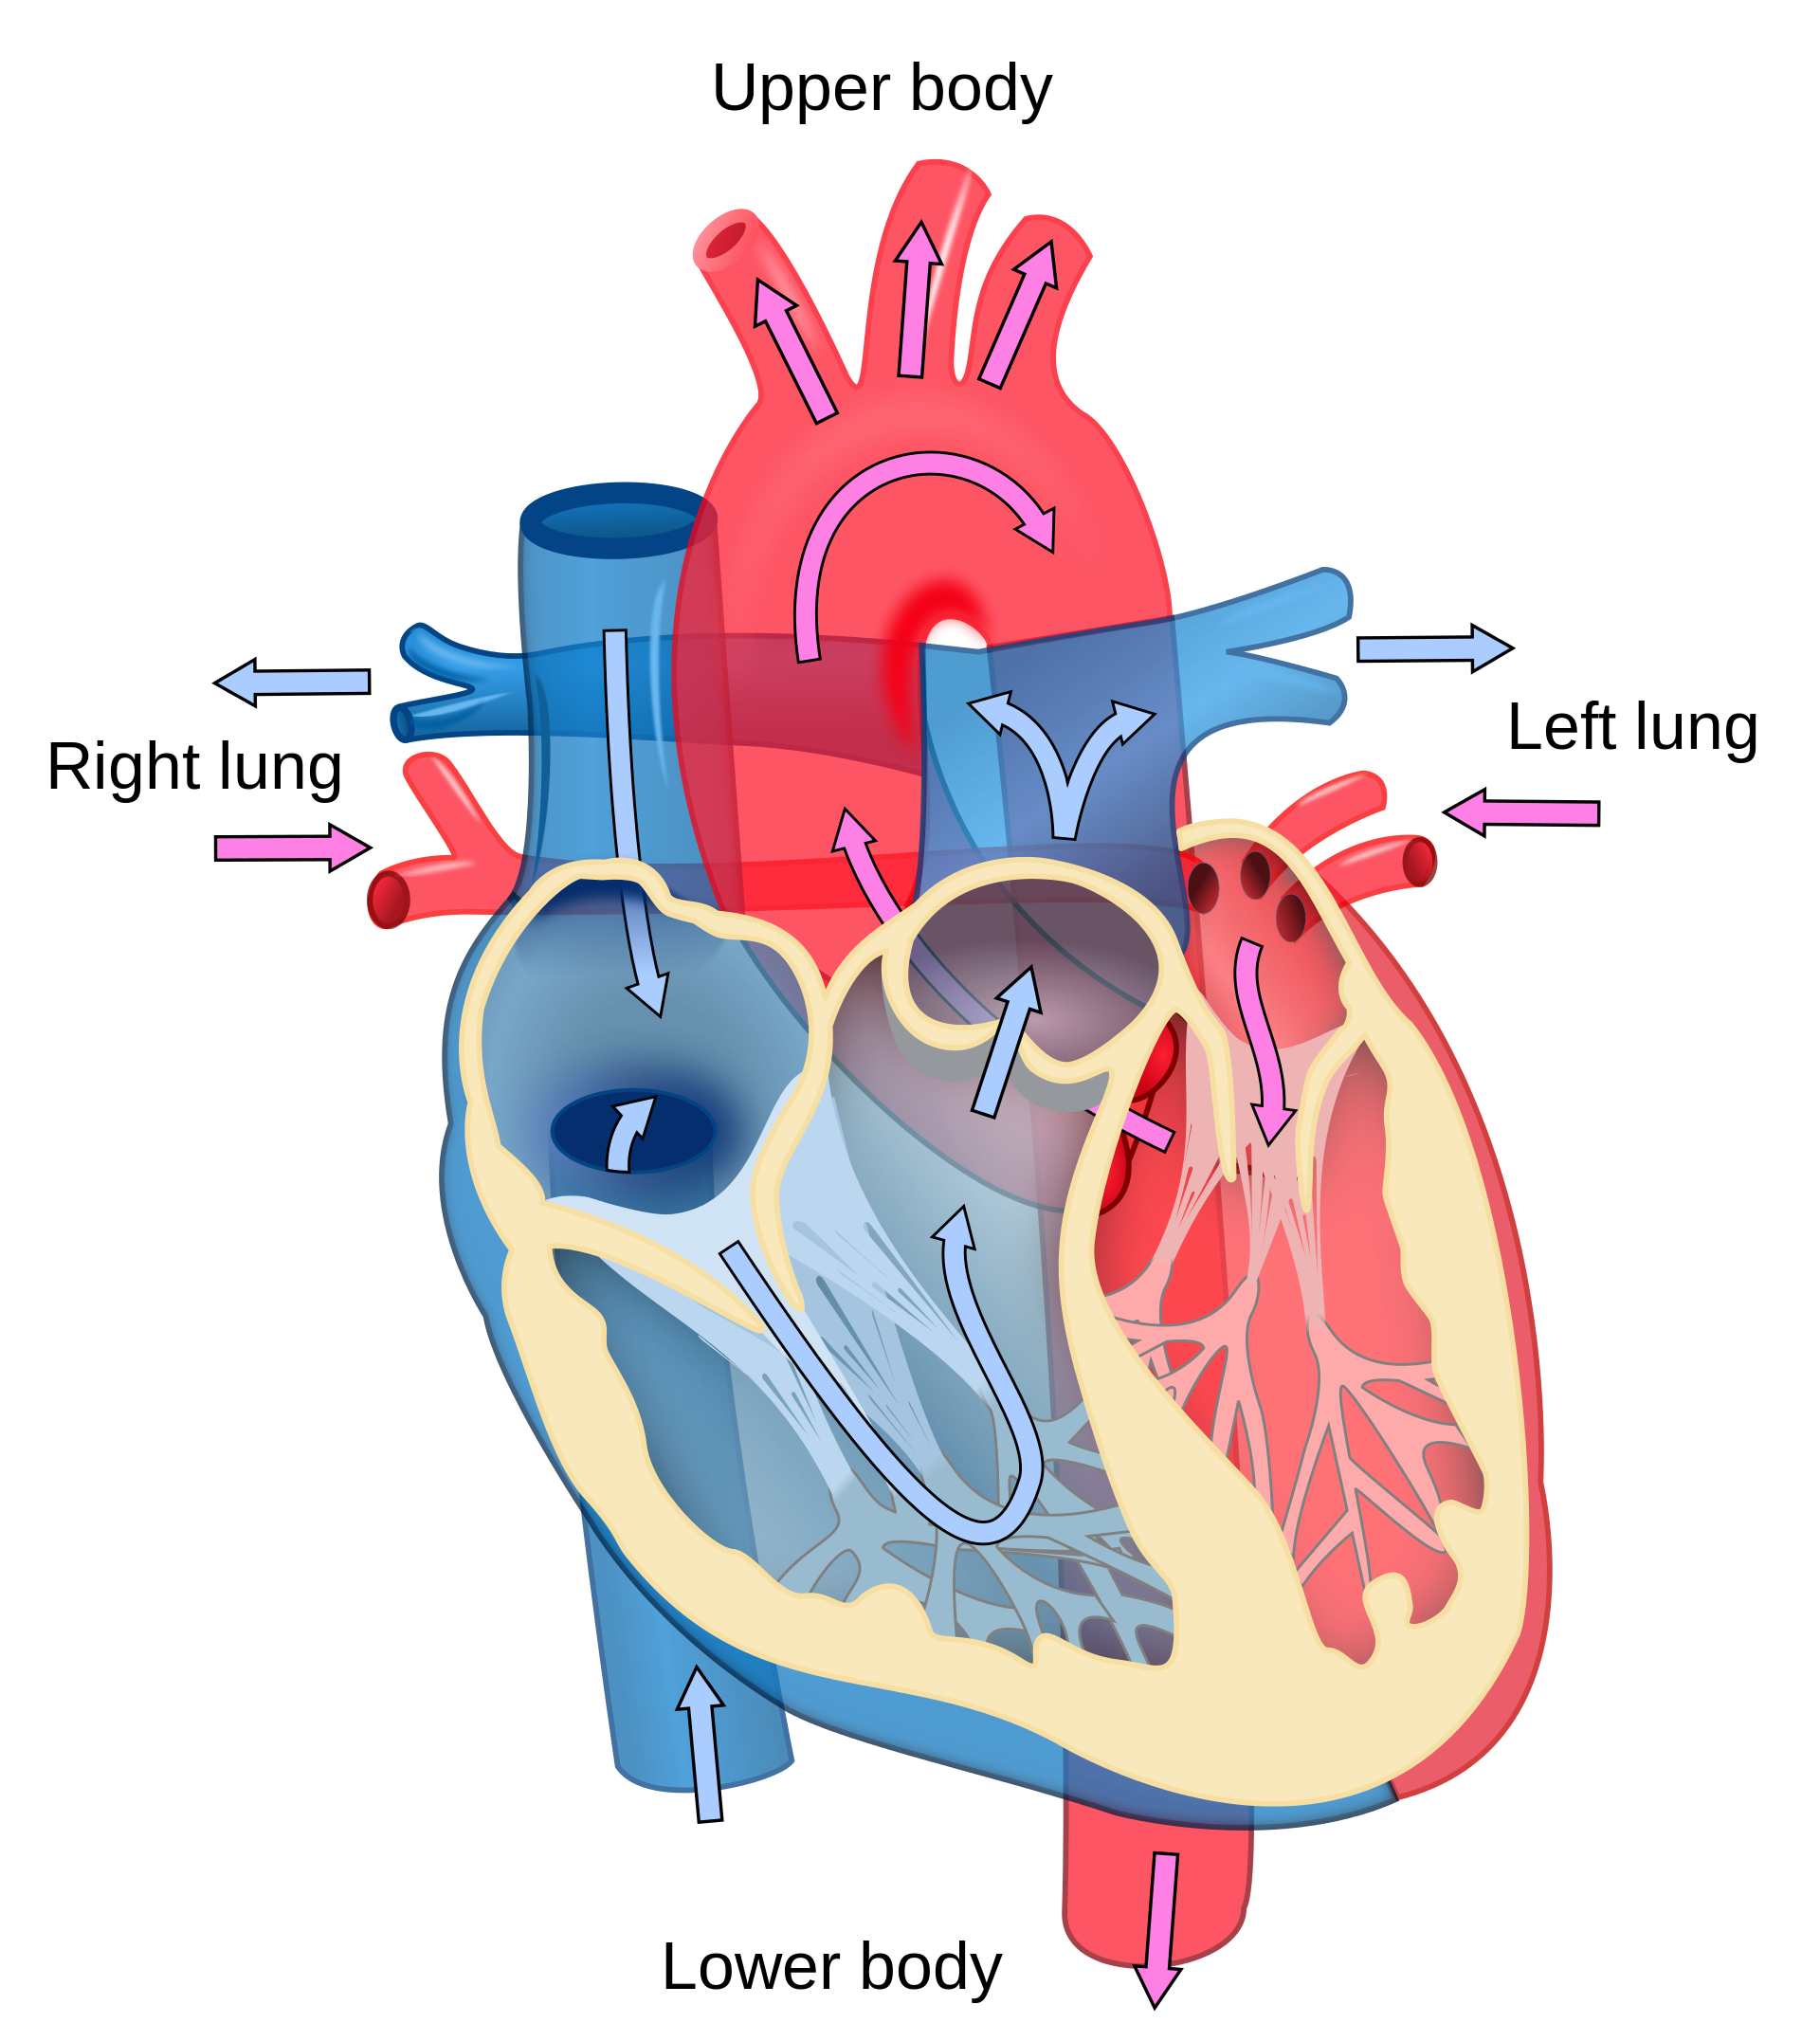 picture transparent Lungs clipart for kids. Heart diagram at getdrawings